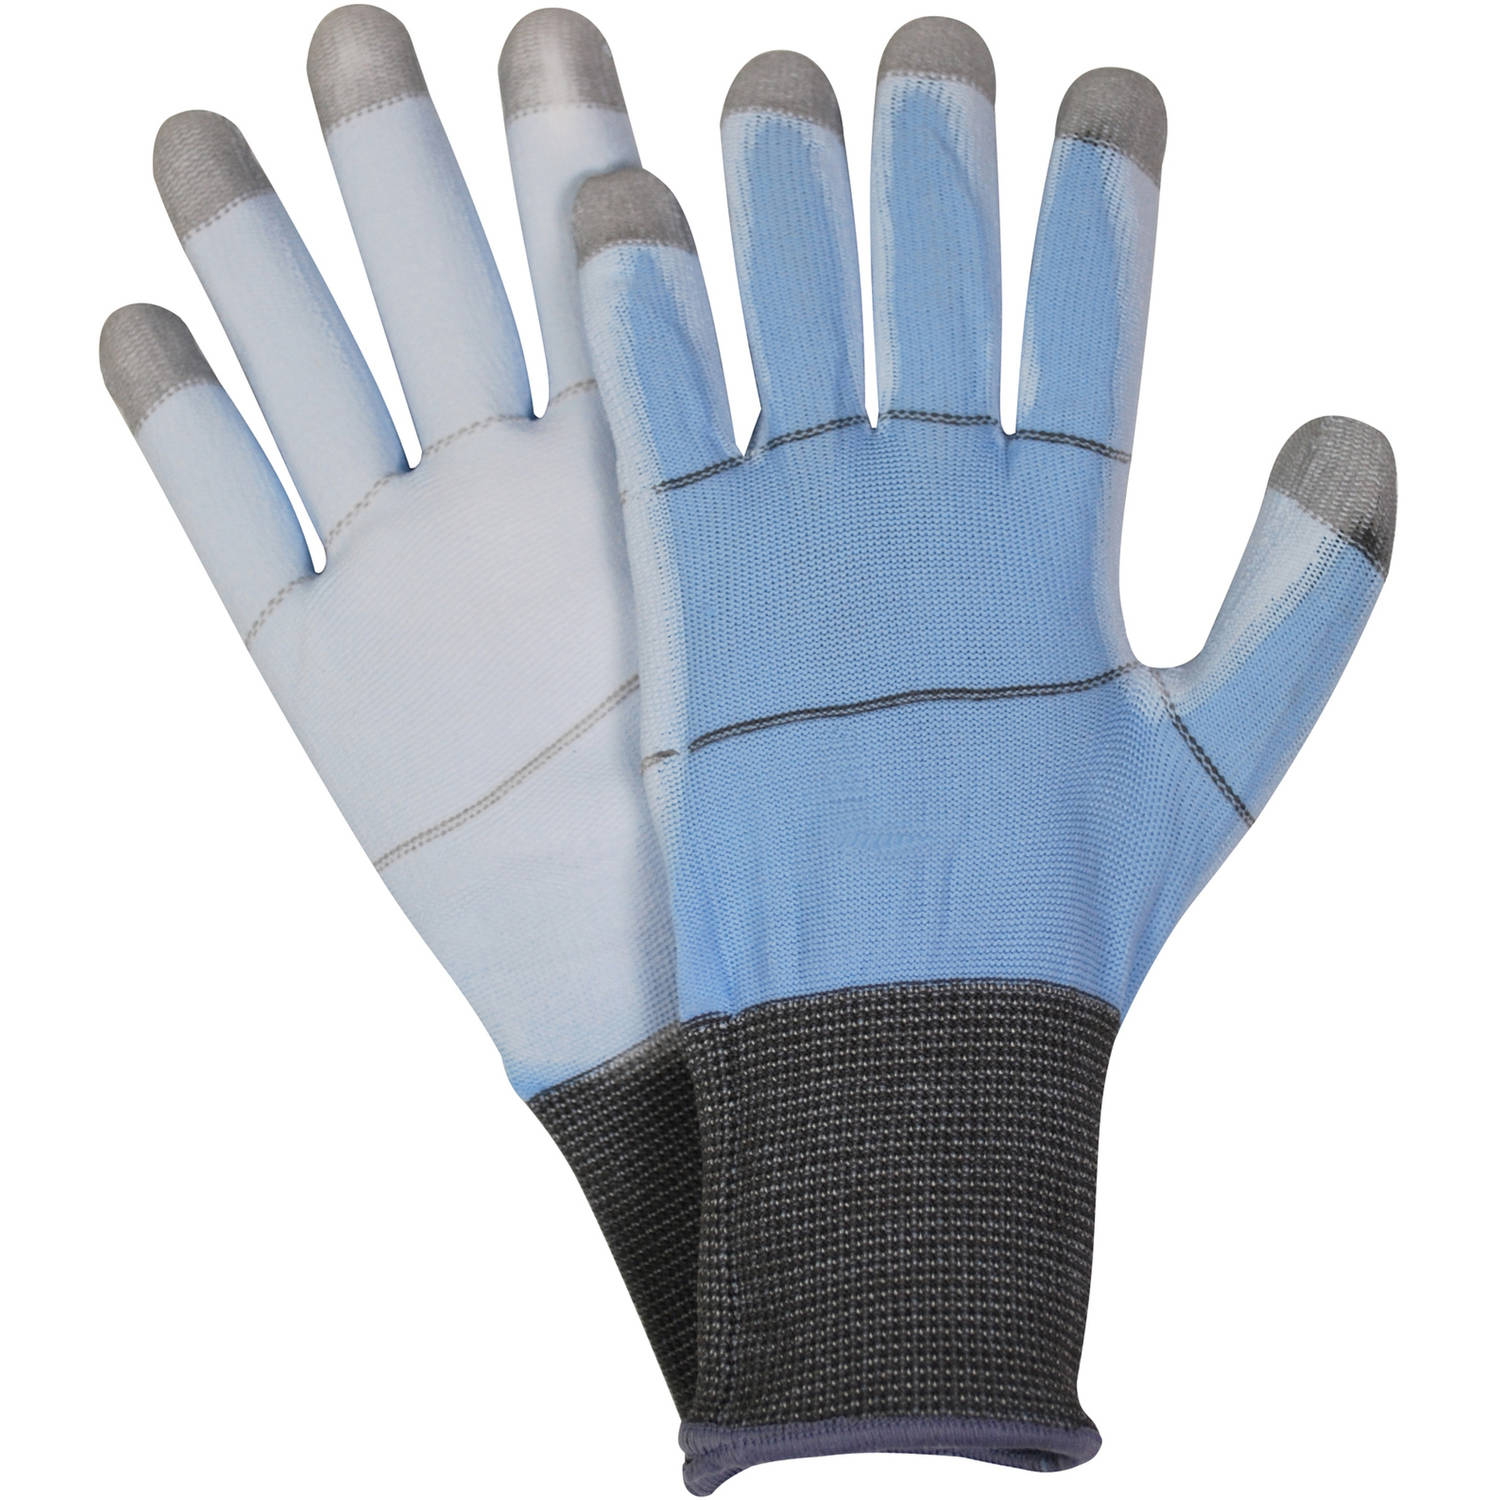 Magid Glove G420TM Medium Supertips Plus Gloves